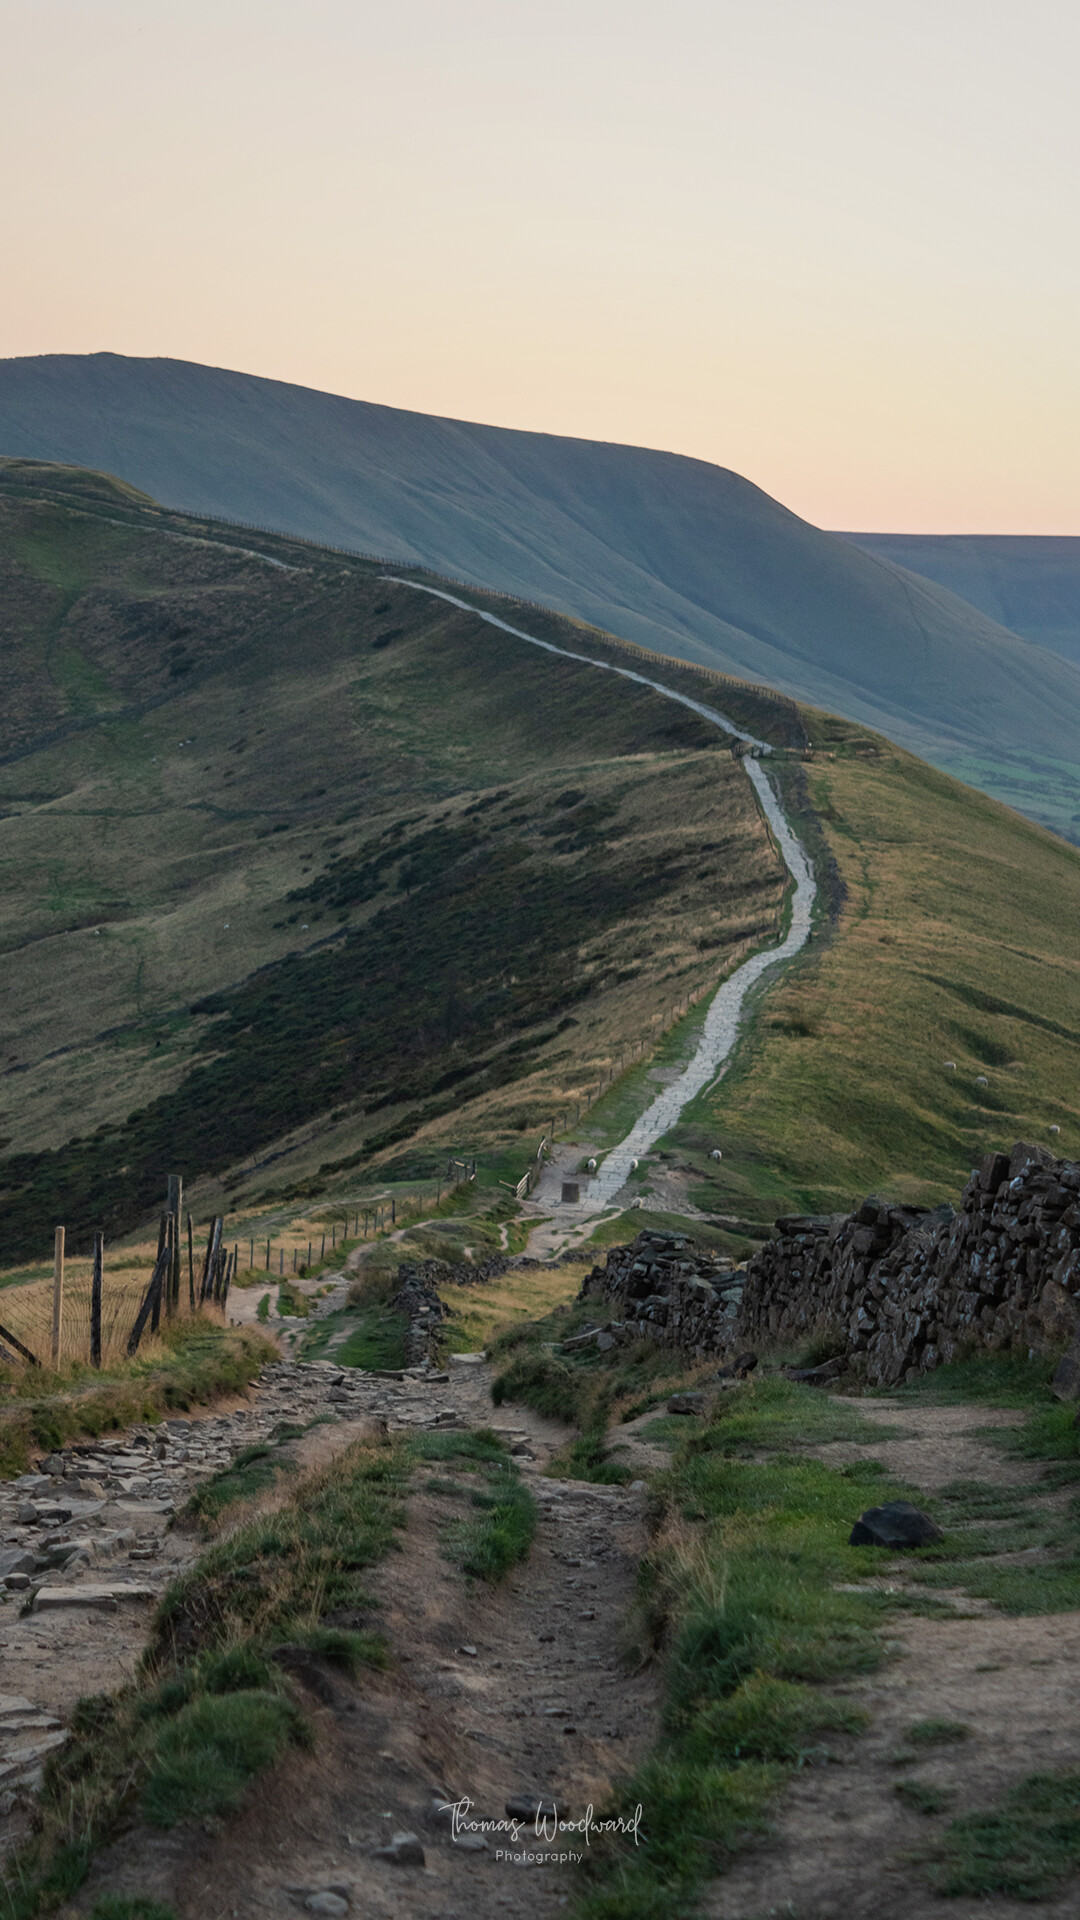 Thomas woodward mam tor evening 6